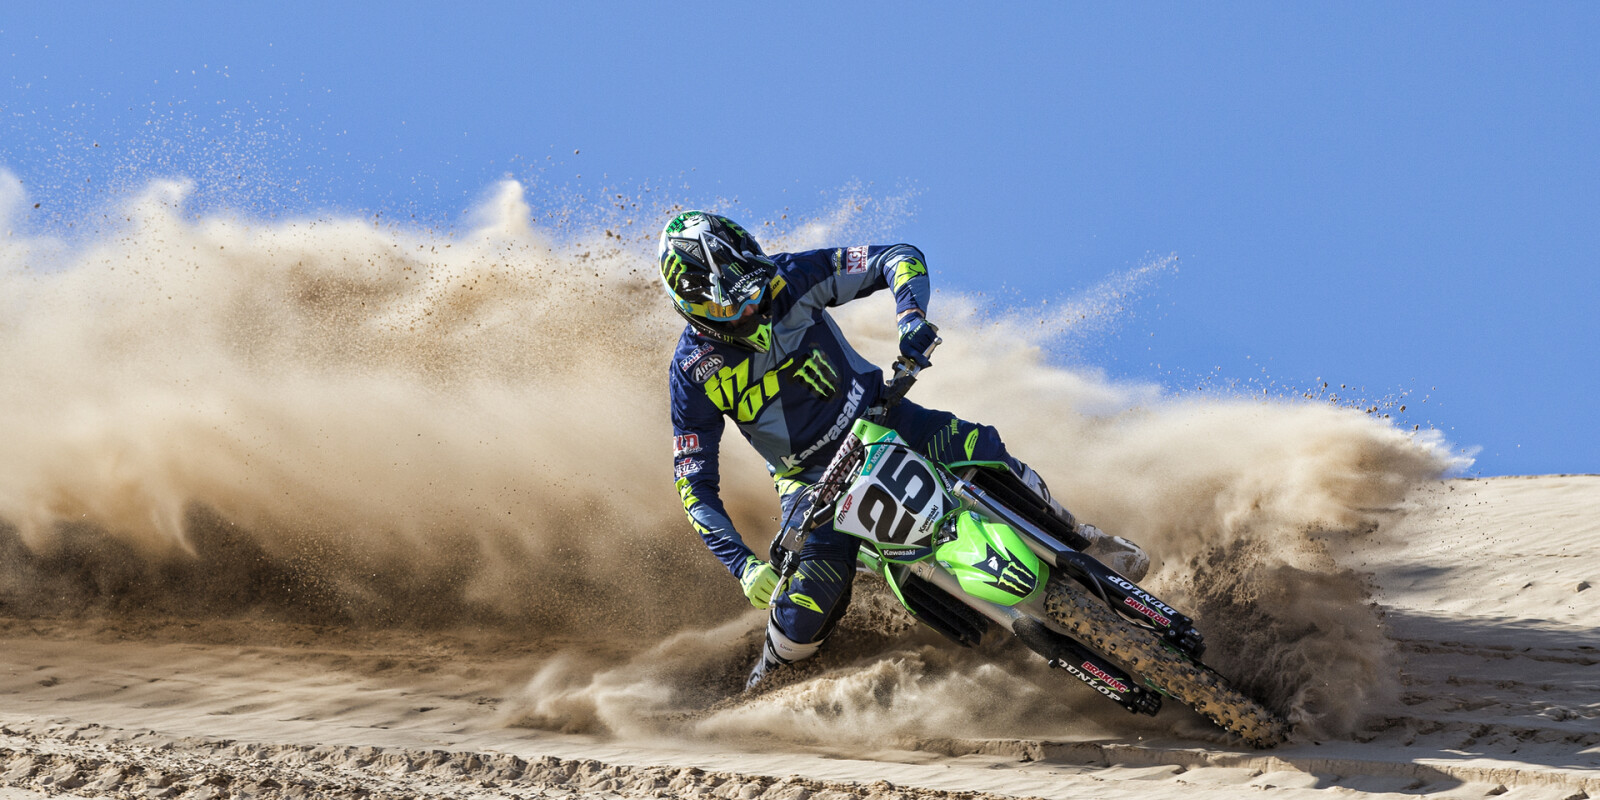 MXGP star and new Monster Energy Kawasaki rider Clement Desalle has fun on his works KX450F in his first official photoshootClement Desalle 2016 Monster Energy Photos